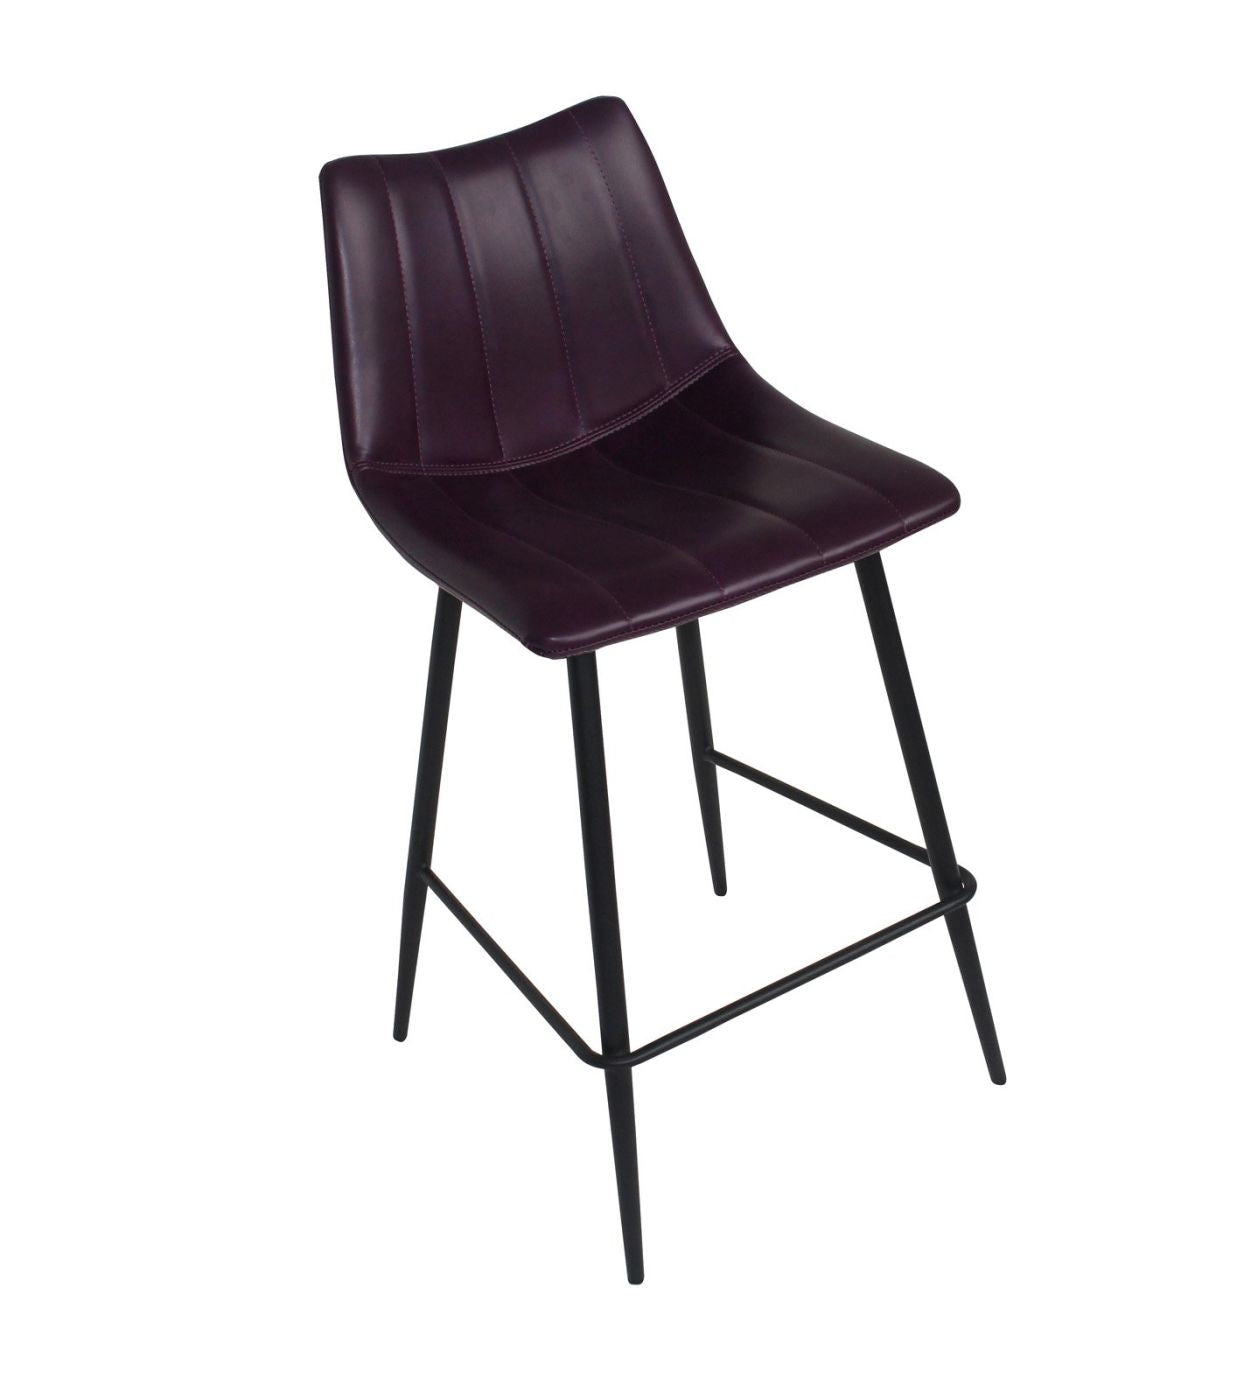 Astounding Alibi Counter Stool Purple Set Of Two Andrewgaddart Wooden Chair Designs For Living Room Andrewgaddartcom